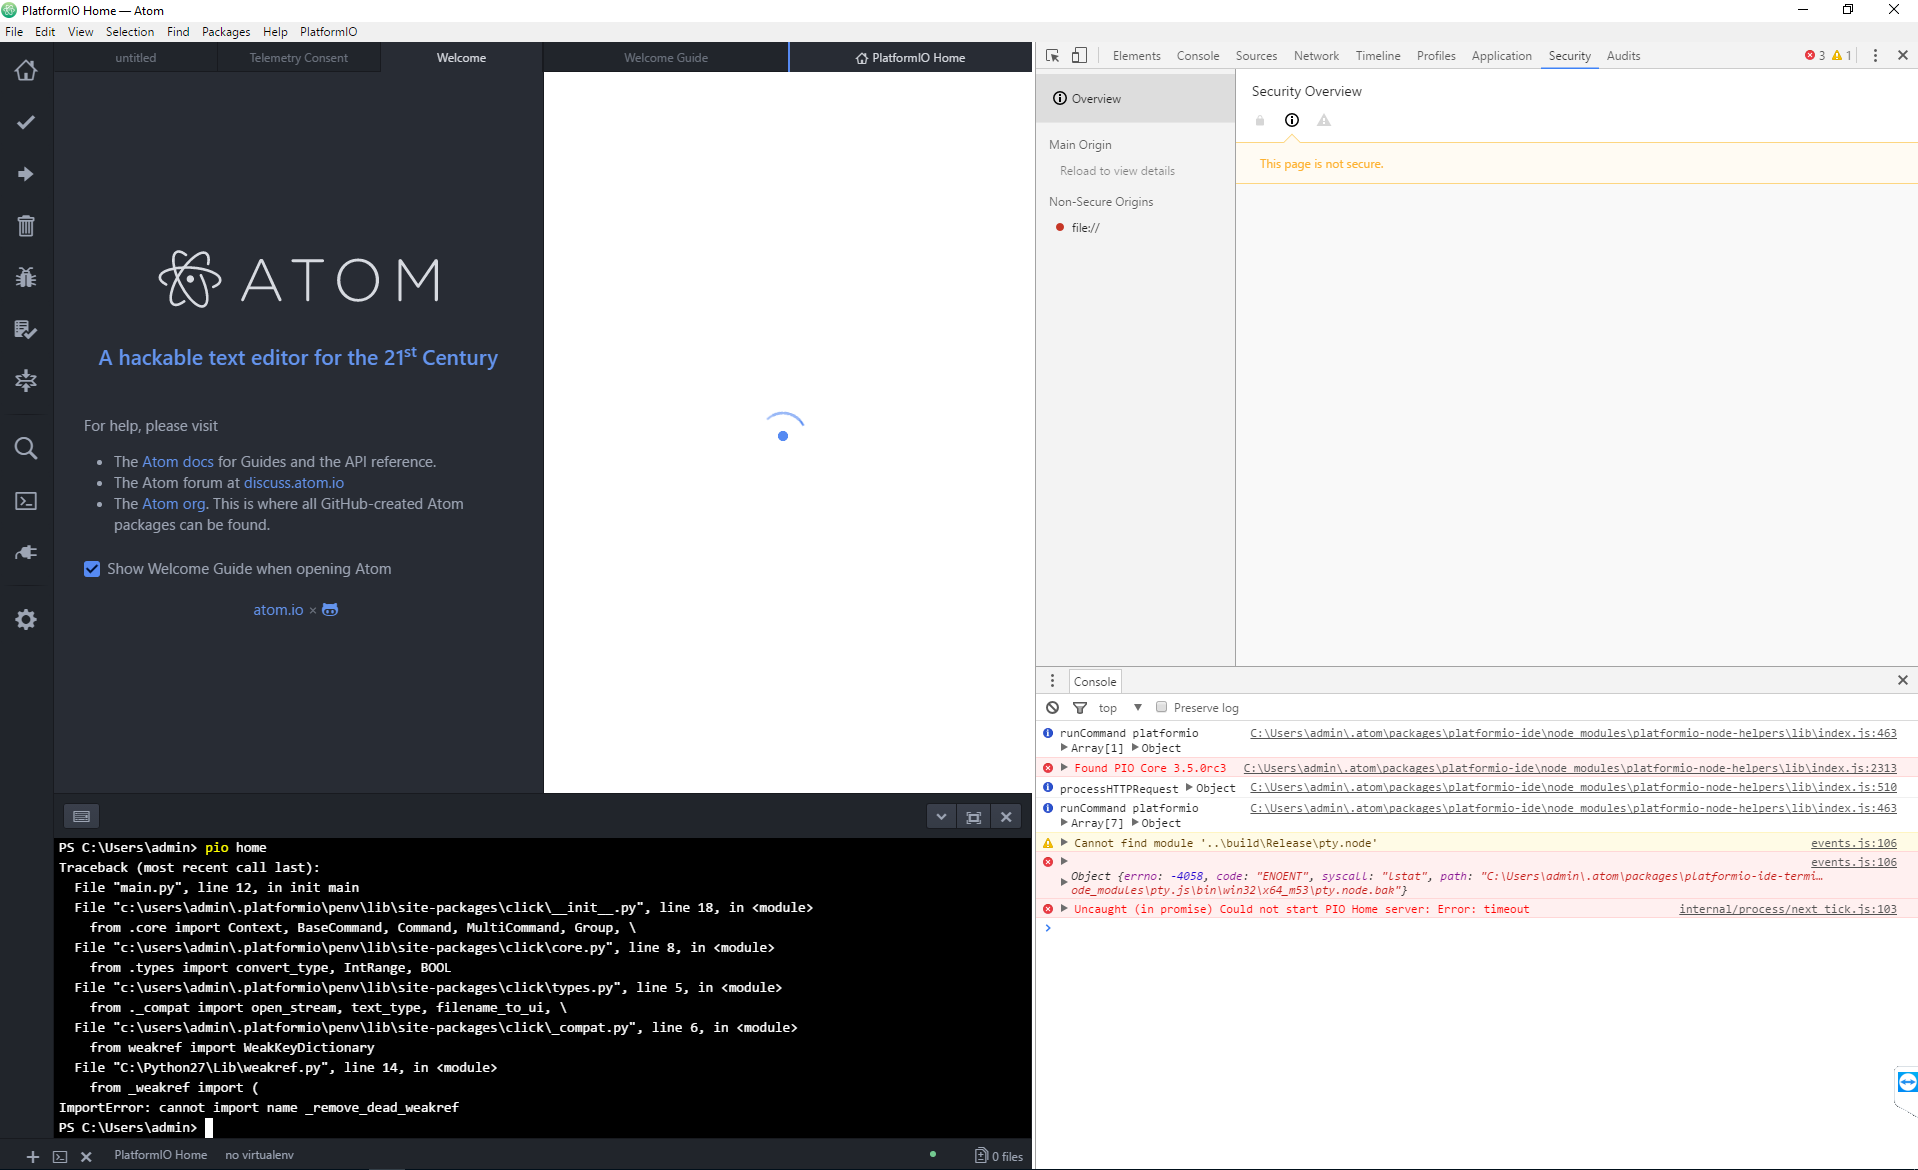 Platform-io home doesn't work in Atom (ImportError: cannot import